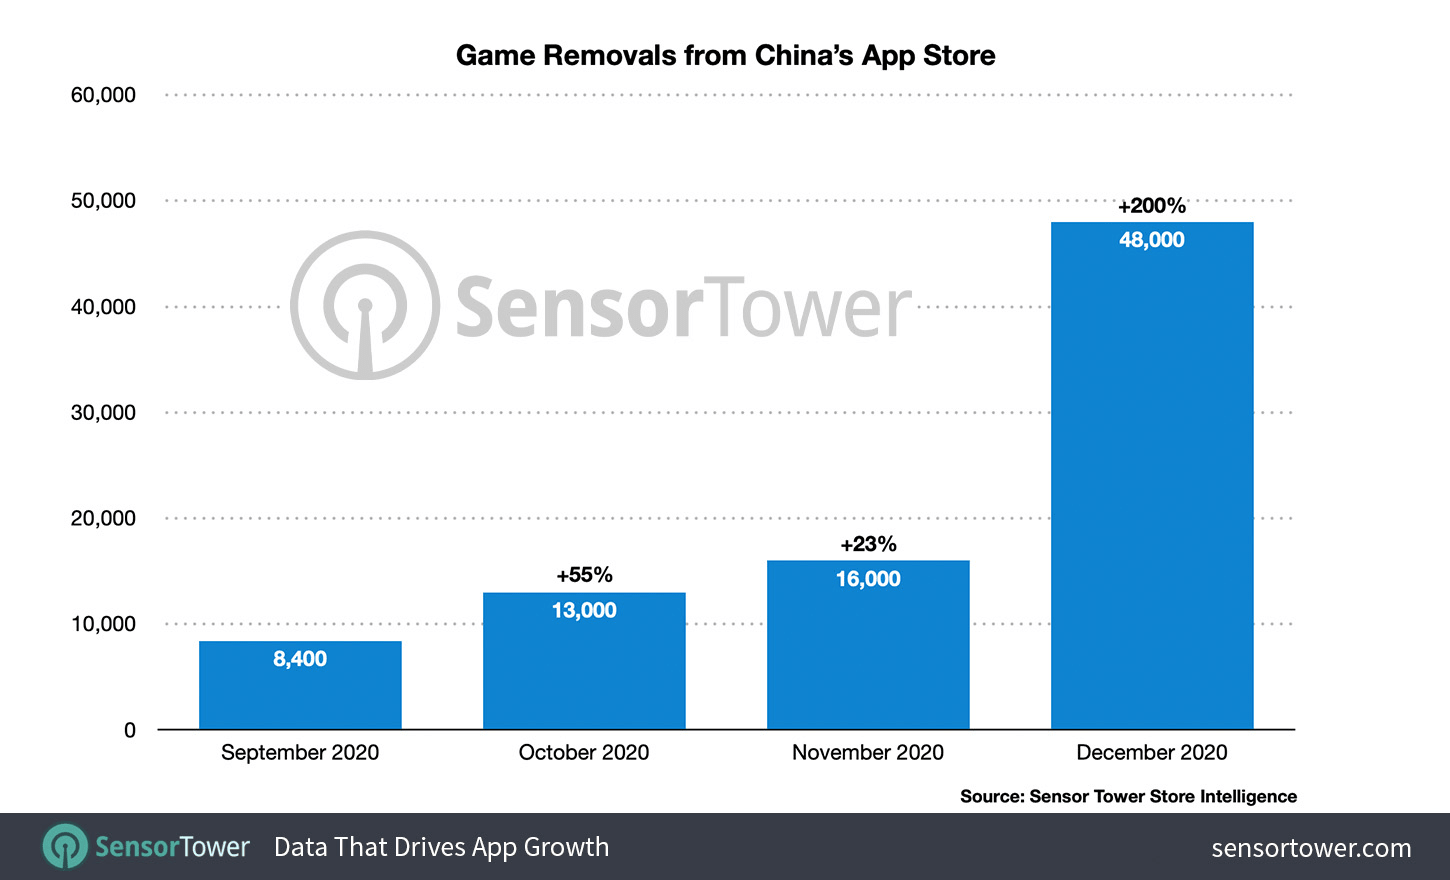 game removals from china's app store